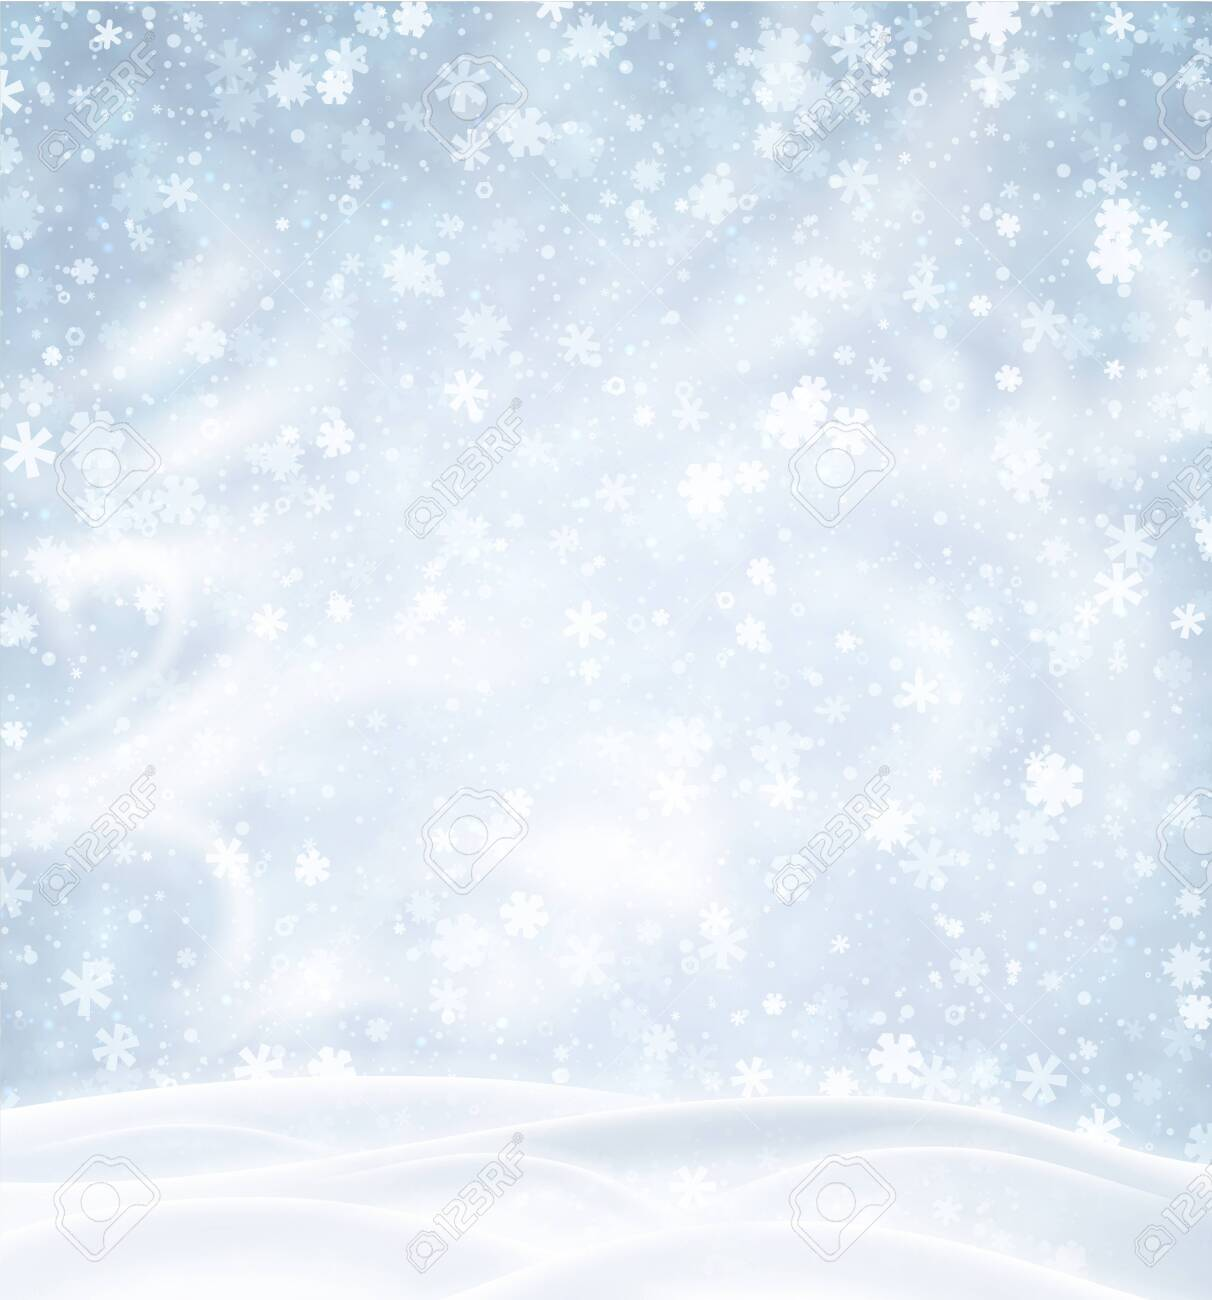 Blue poster with winter landscape, snowflakes and blizzard. Vector background. - 123837254